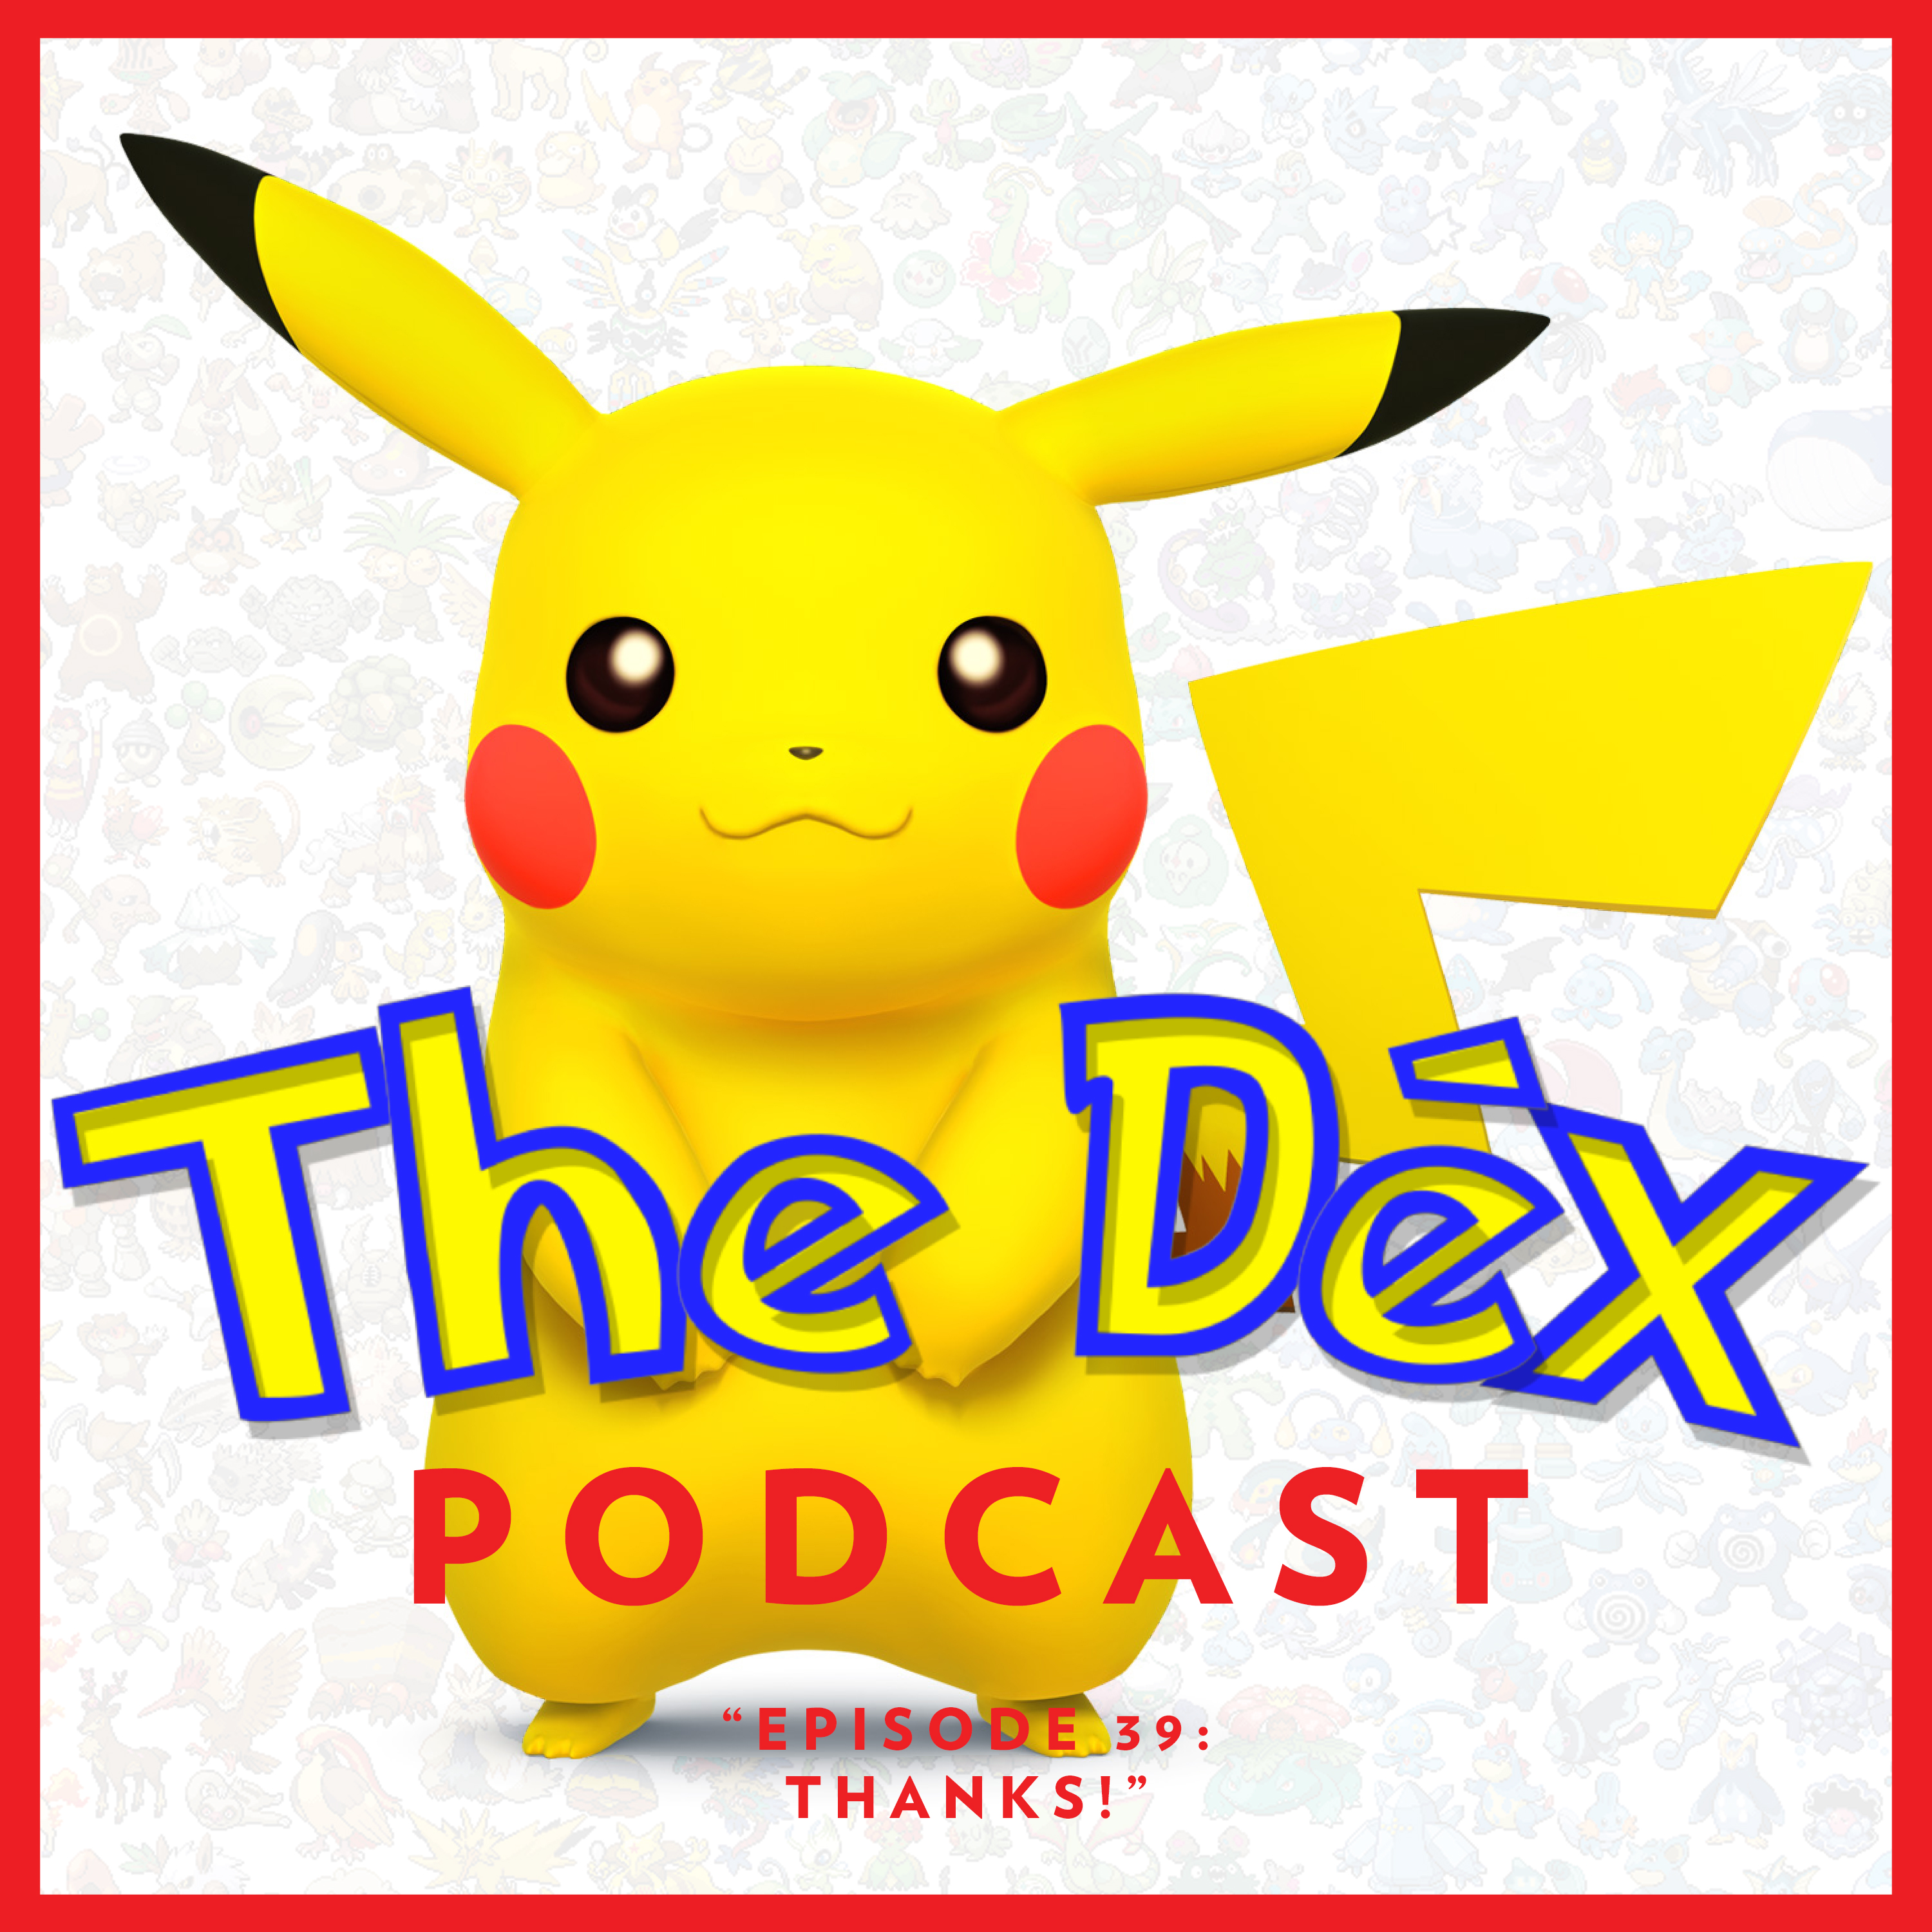 The Dex! Podcast #39: Thanks!